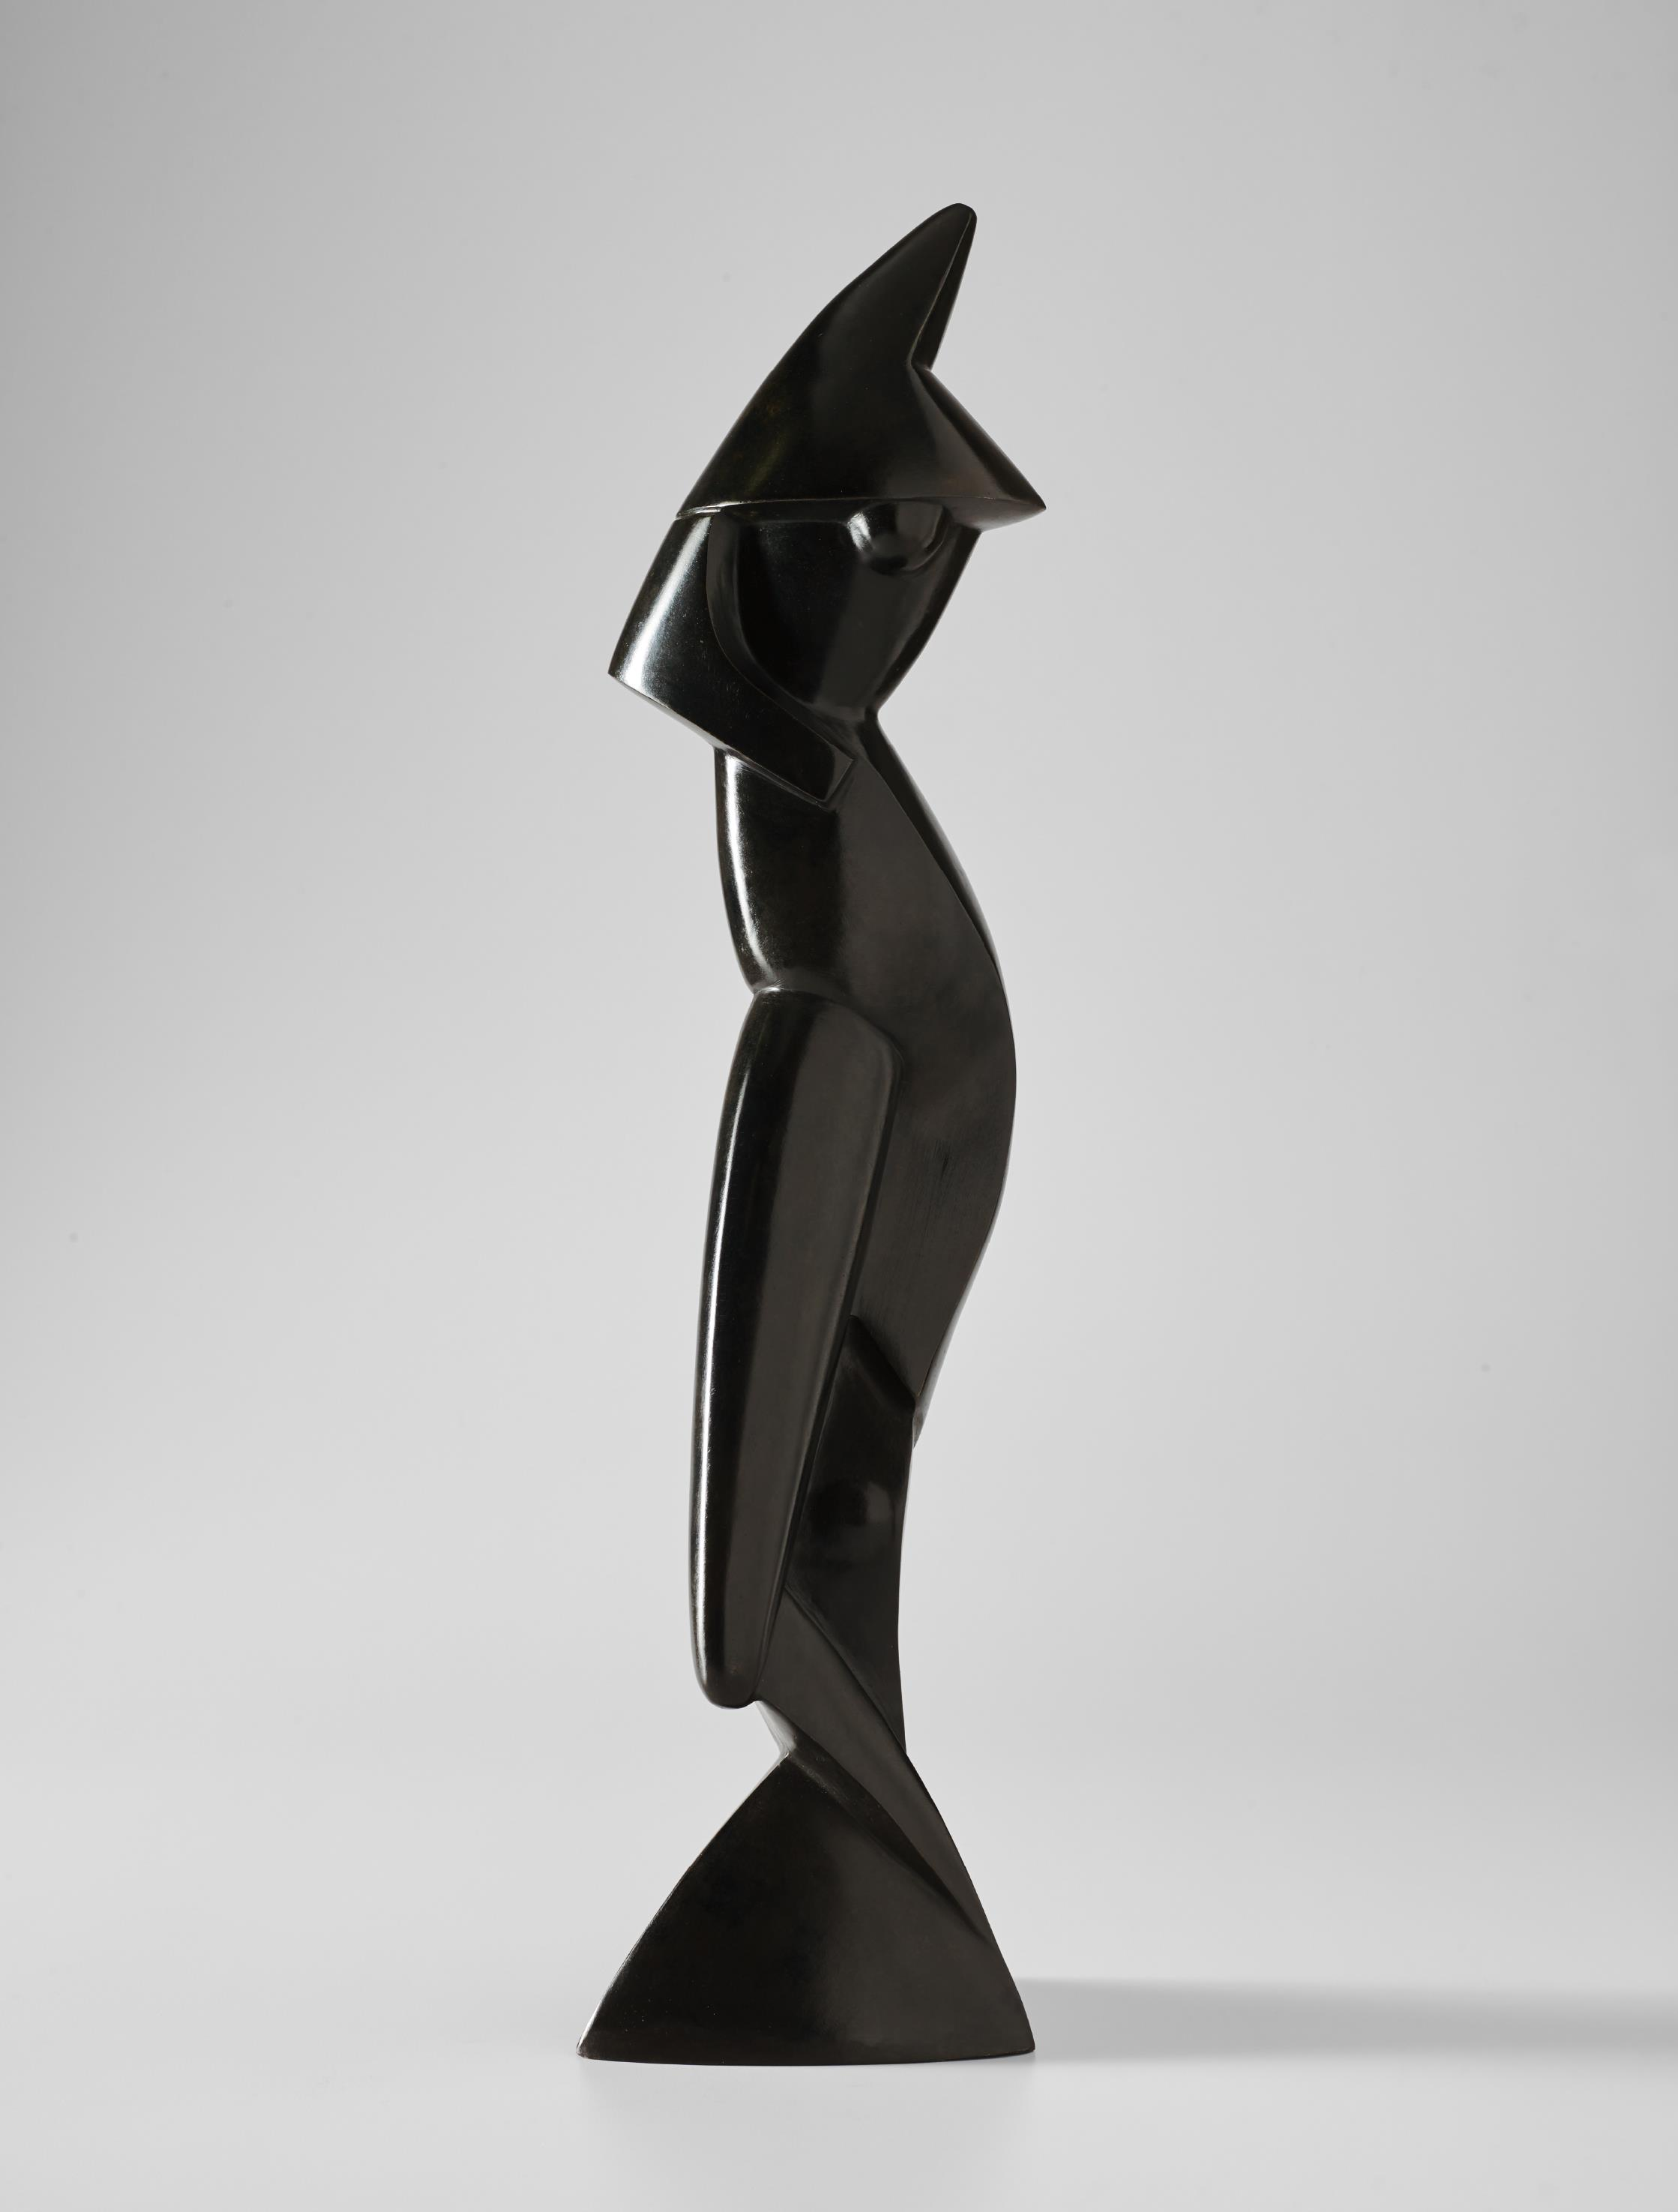 Alexander Archipenko-Statue on Triangular Base-1914